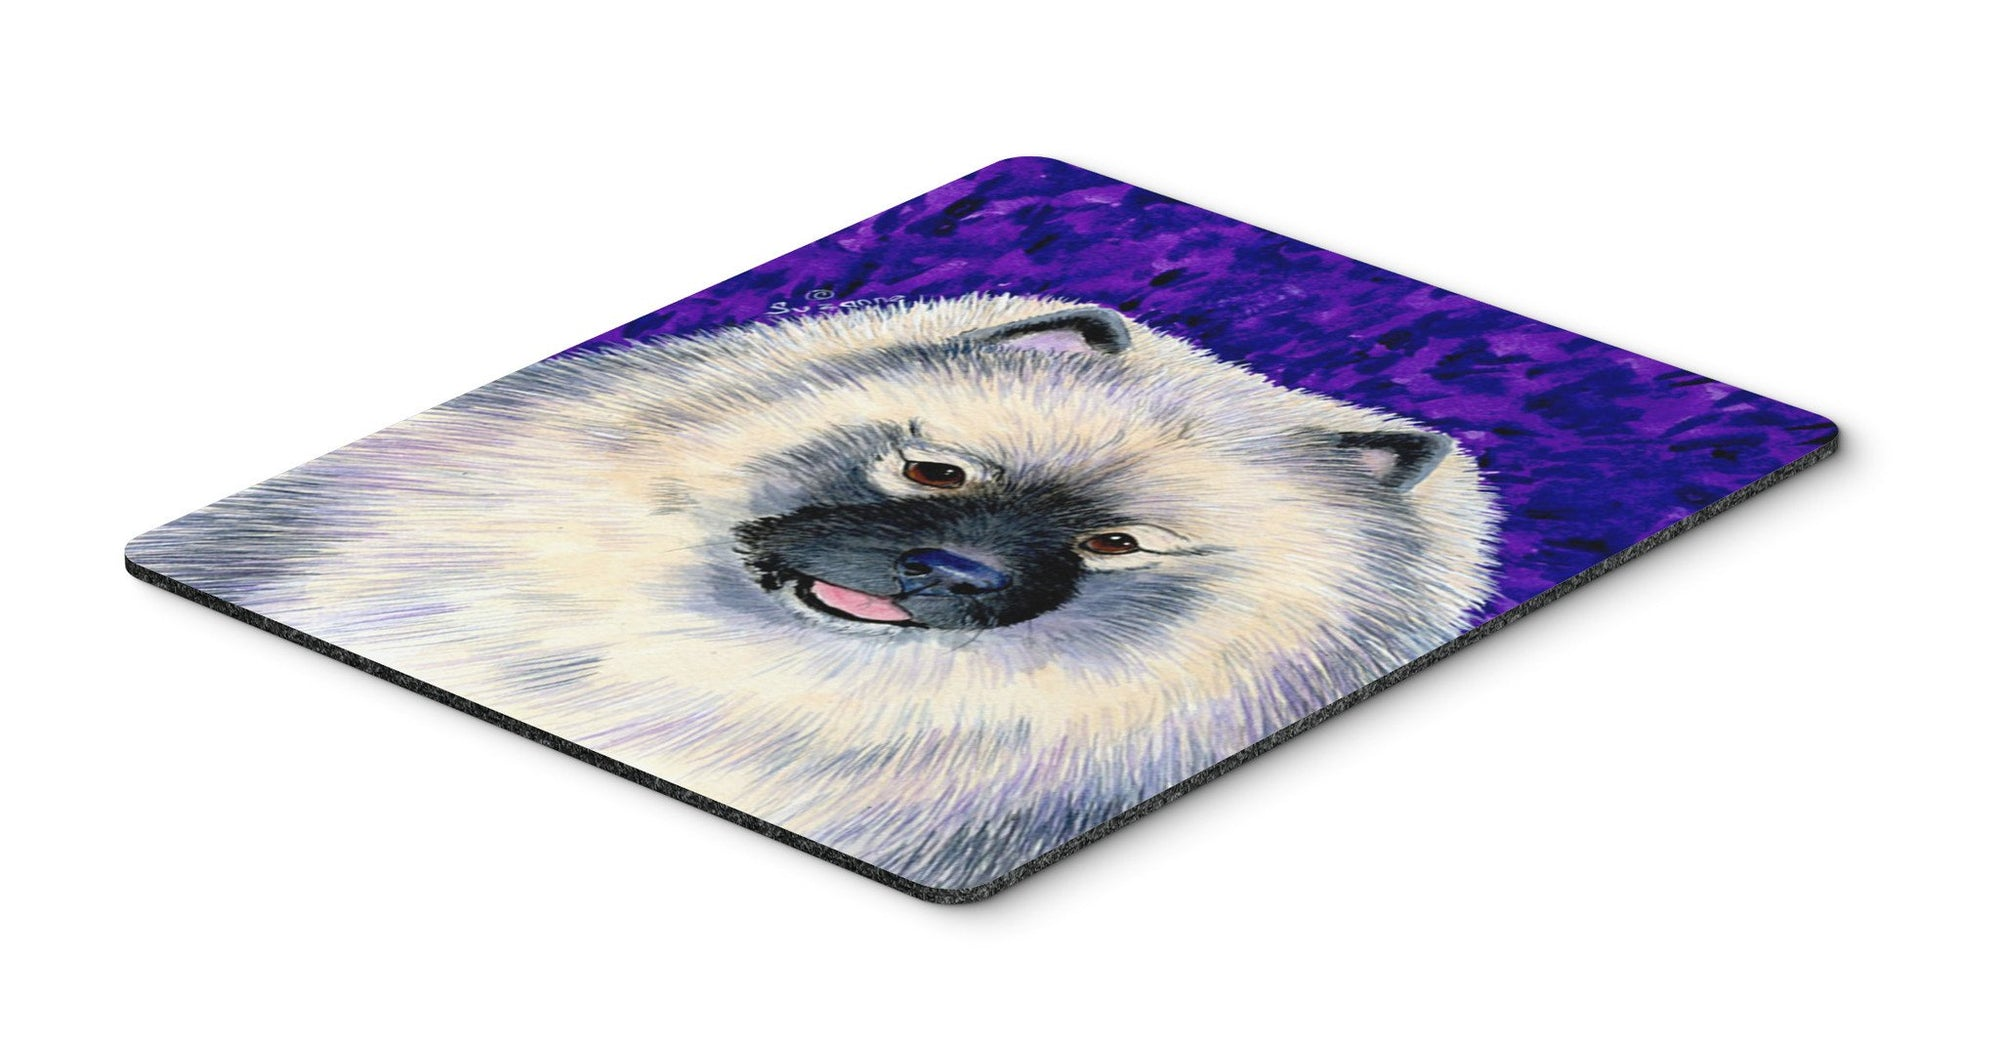 Keeshond Mouse Pad / Hot Pad / Trivet by Caroline's Treasures